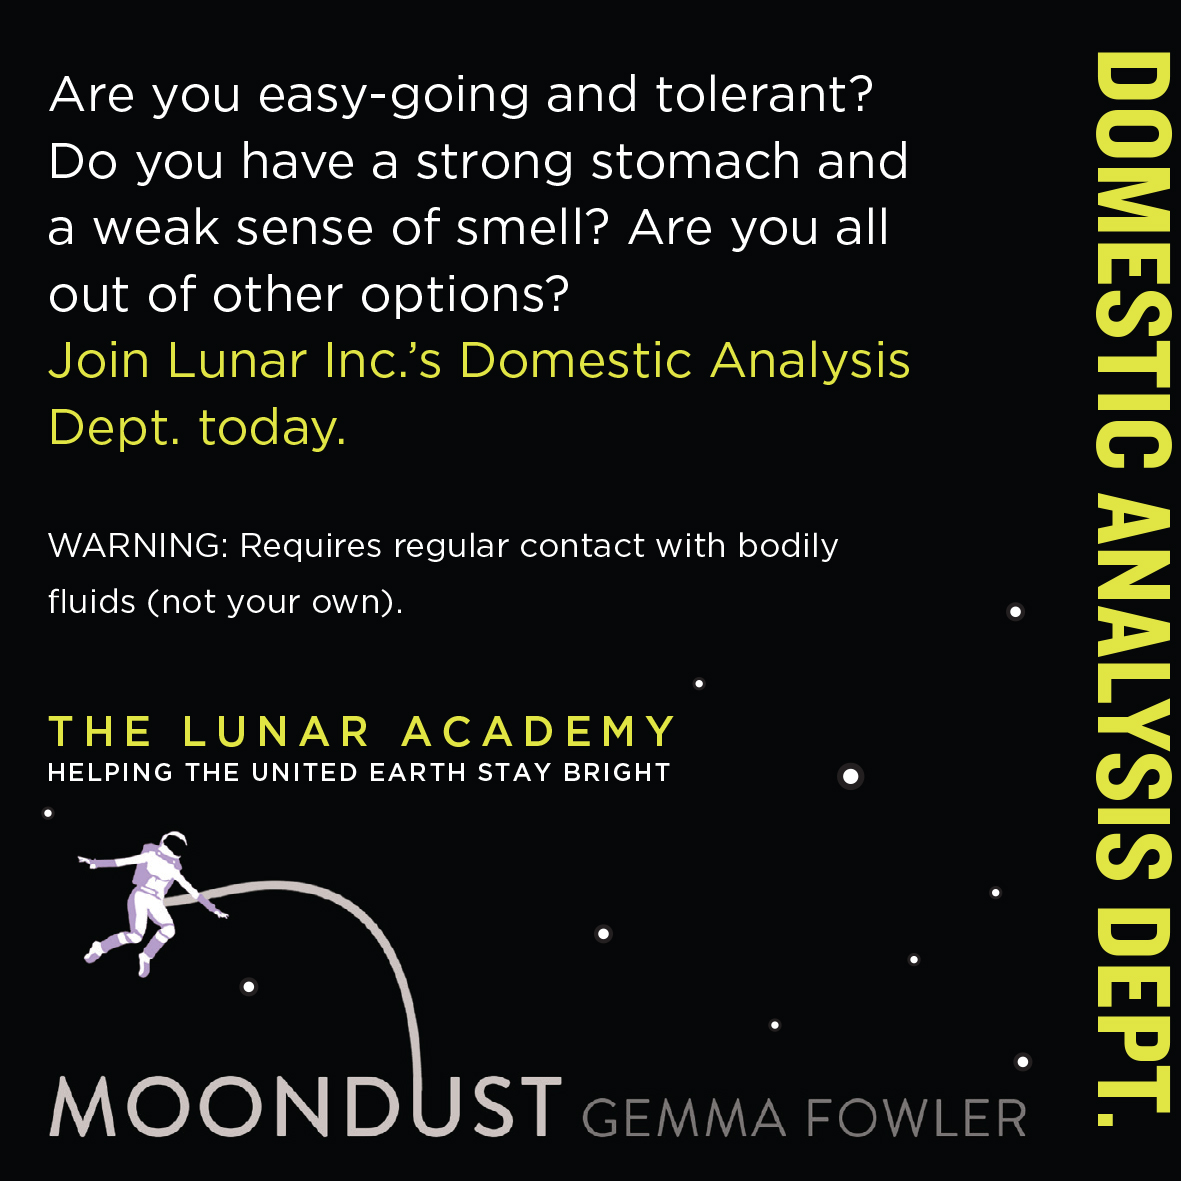 Moondust wanted ads 2.jpg